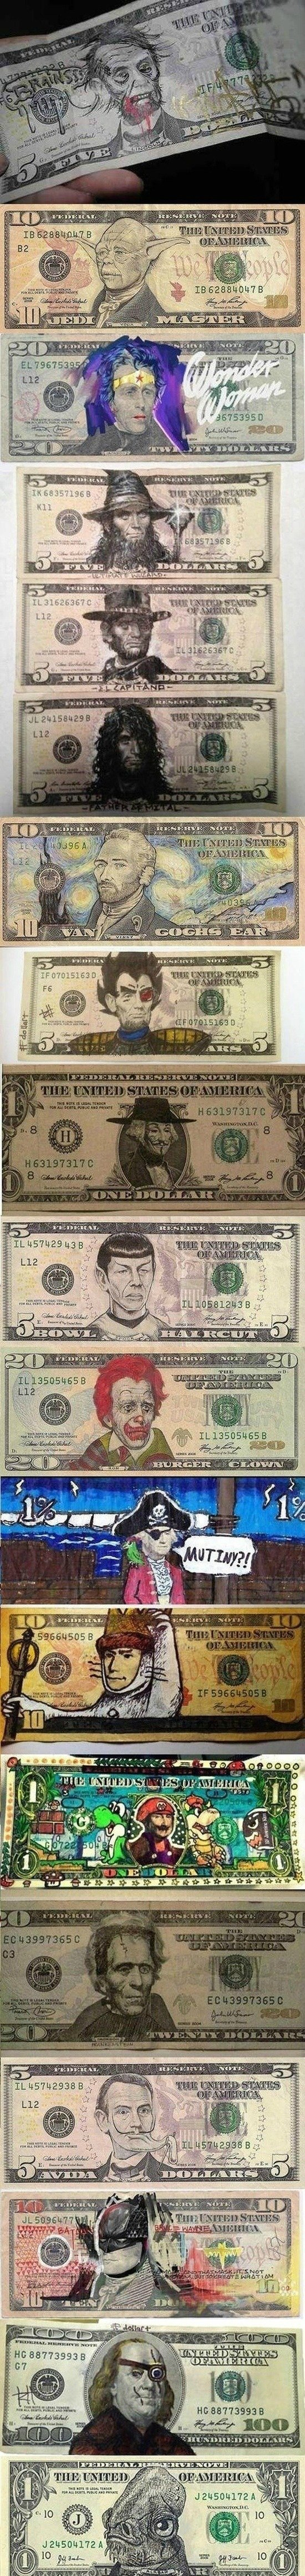 Money. If i had these I'd rather become a hobo than use them.. misses a